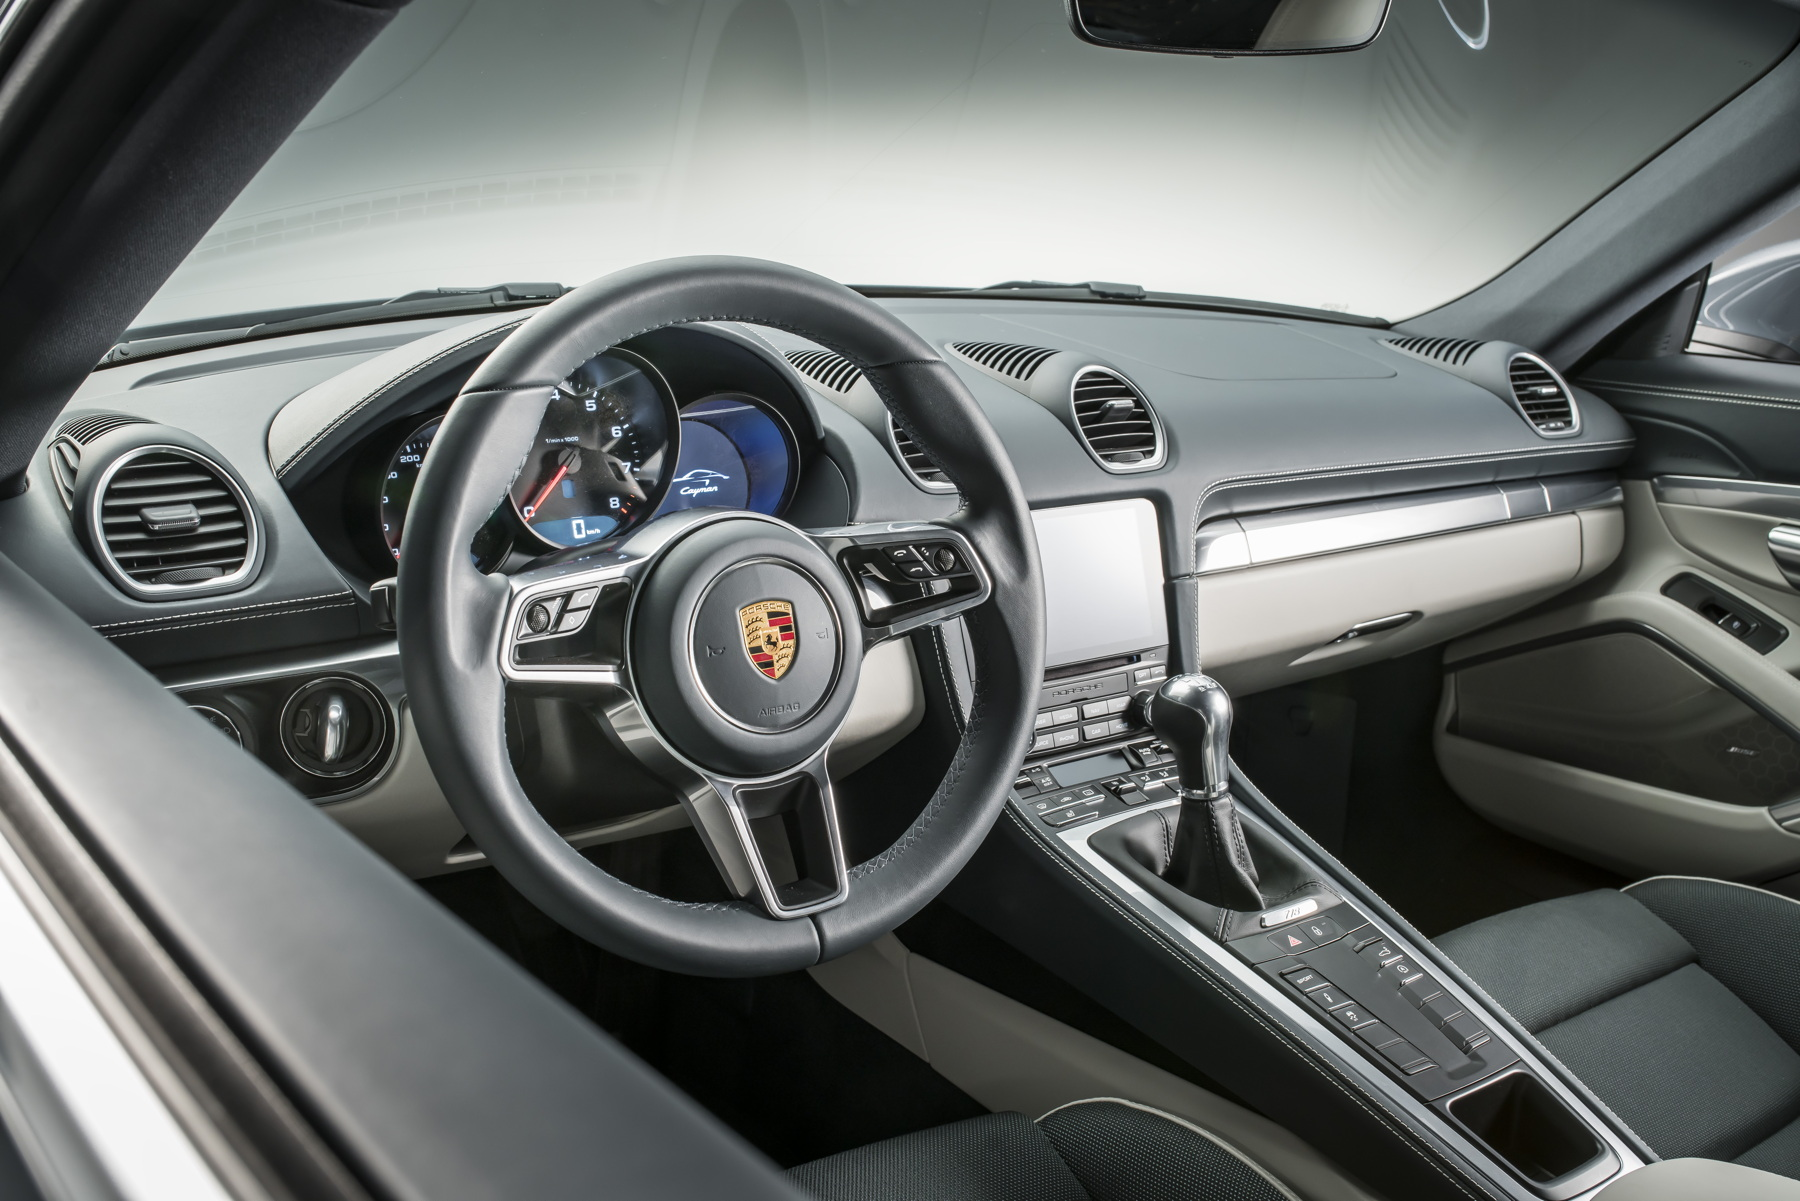 Inside, the new Cayman gets Porsche's latest treatment, complete with 918 Spyder-style steering wheel and the latest PCM with even more connectivity.